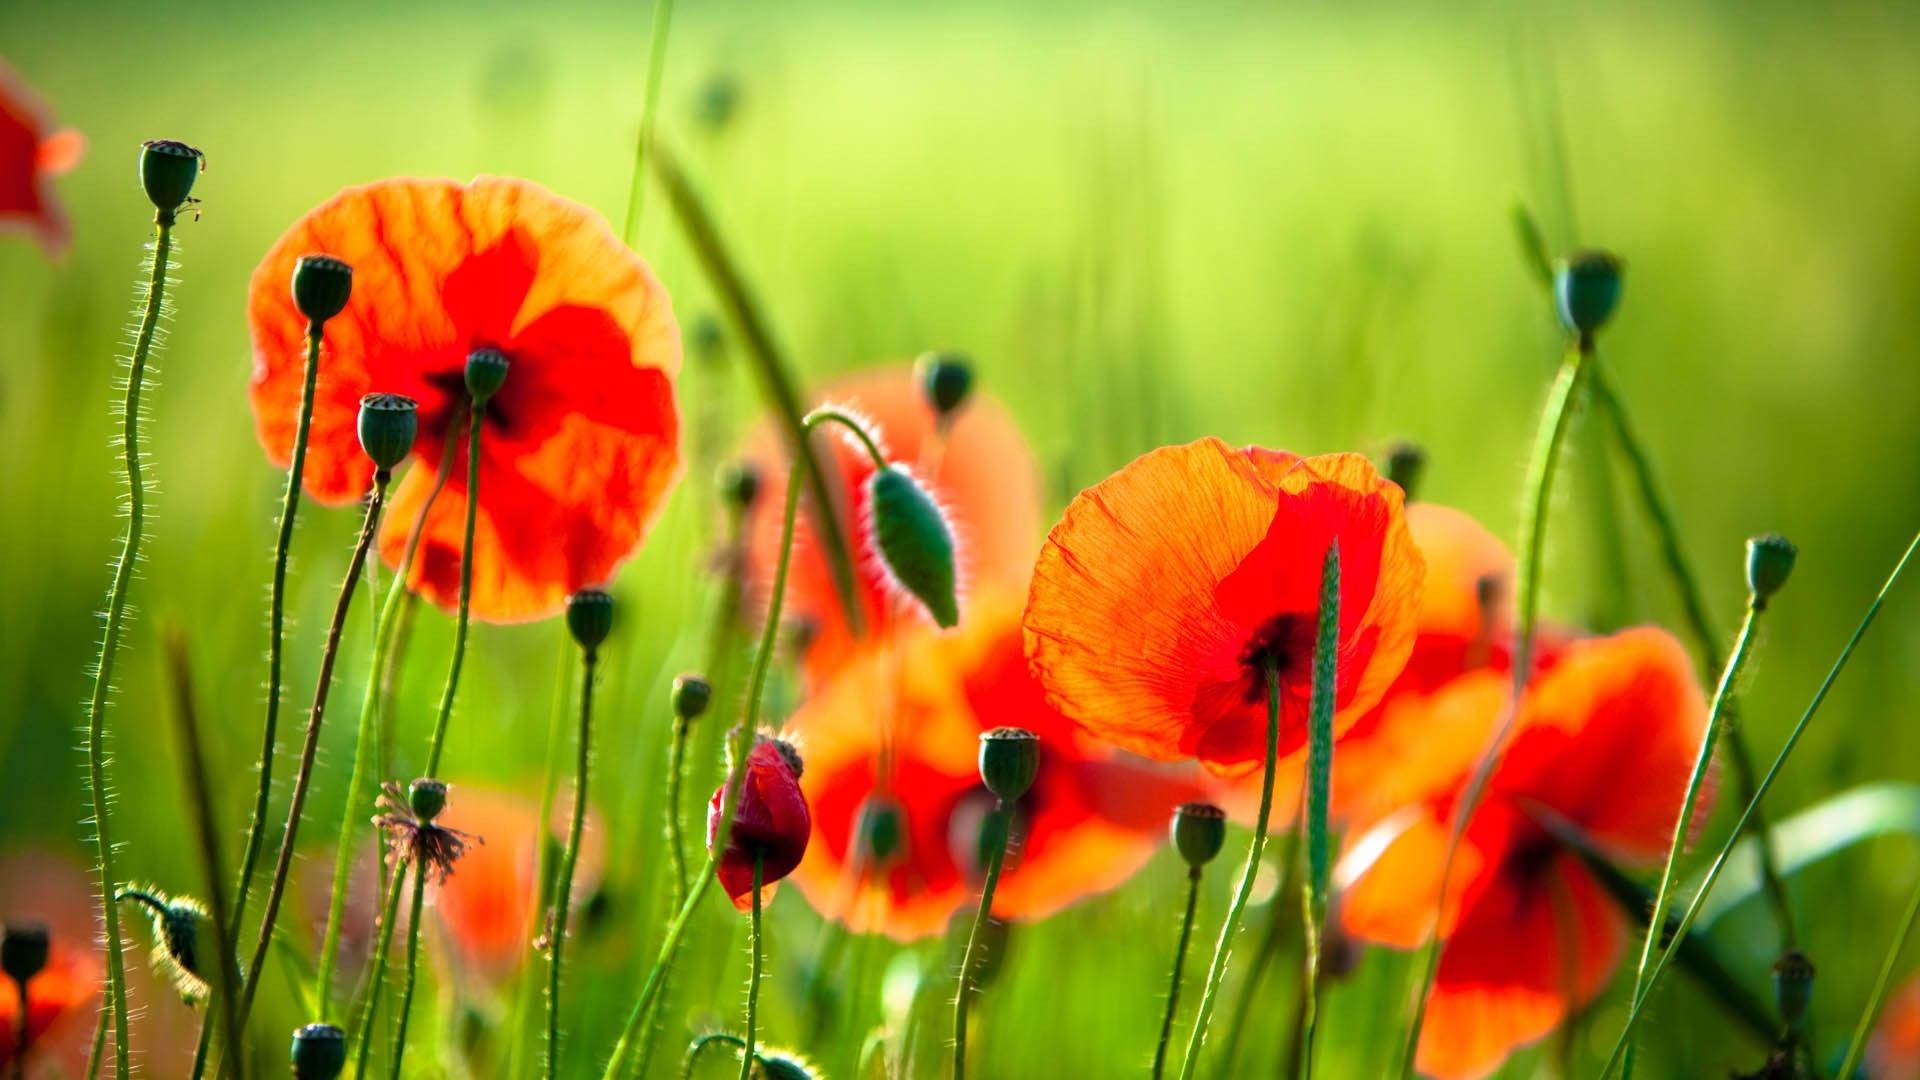 1920x1080 Full HD Wallpaper poppy side view blurry background sprout